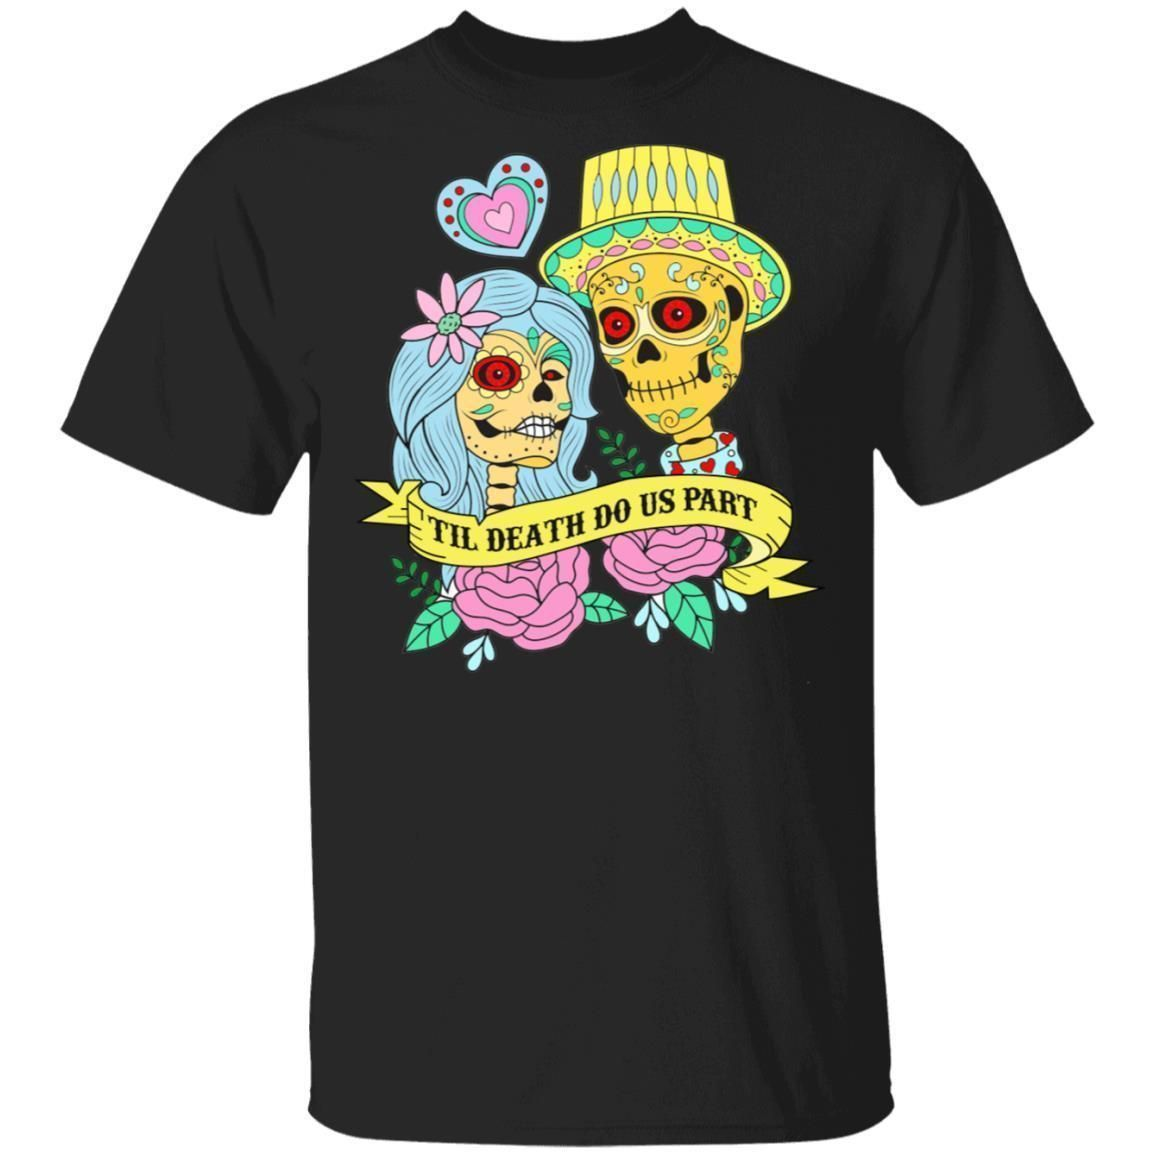 Valentine Skull Tee Shirt Til Death Do Us Part Couples T-shirt MT01-Vivianstores